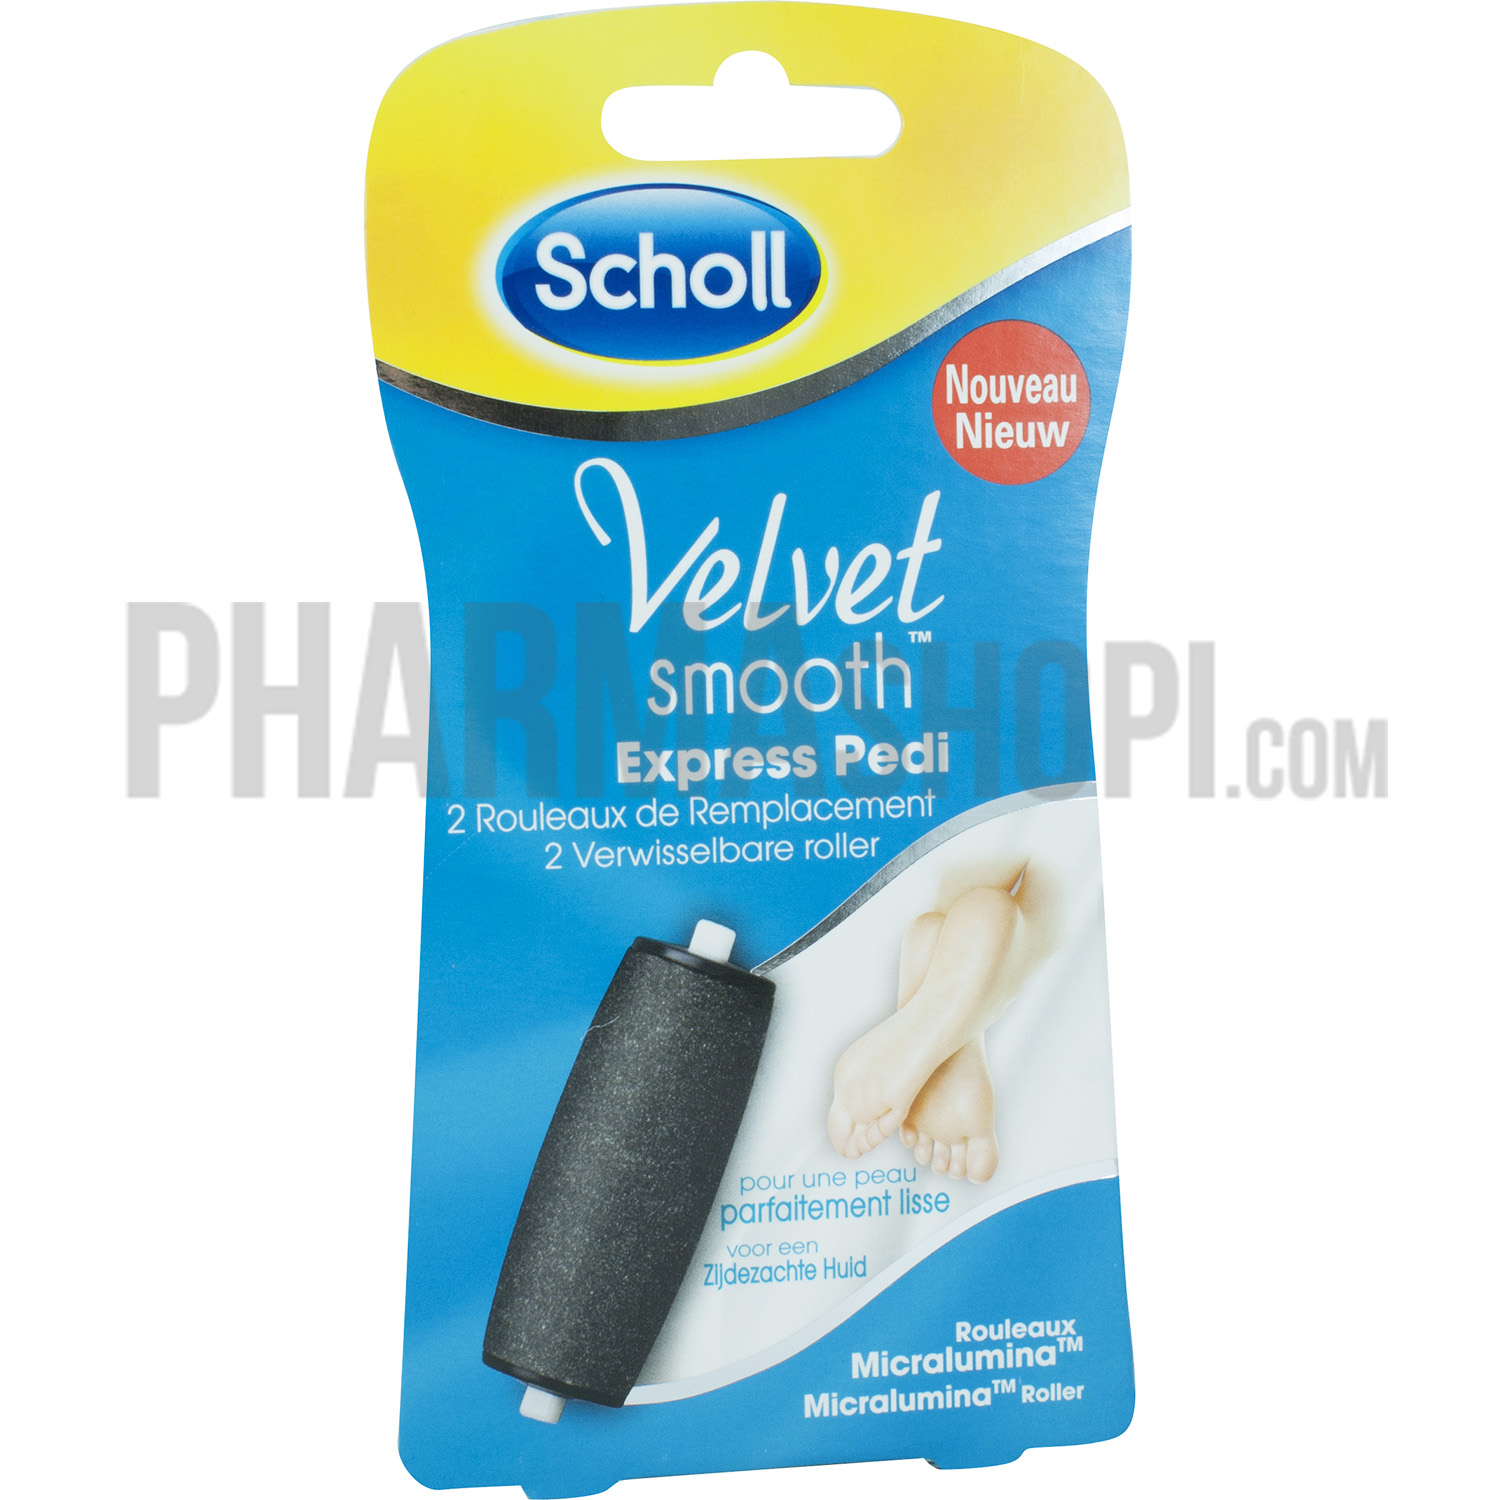 how to clean scholl velvet smooth express pedi